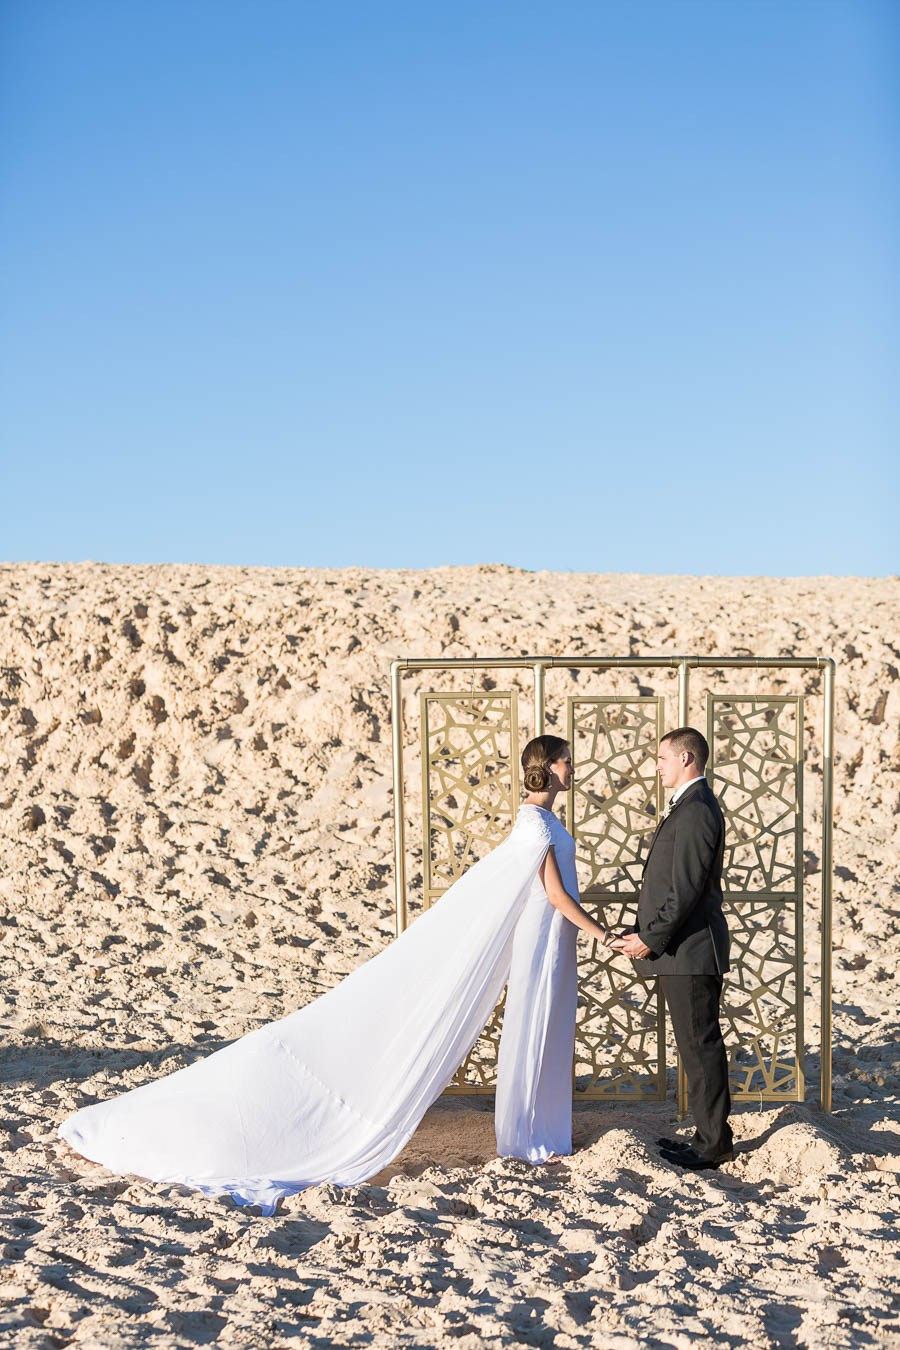 The wedding backdrop was a gold laser cut one placed in the desert